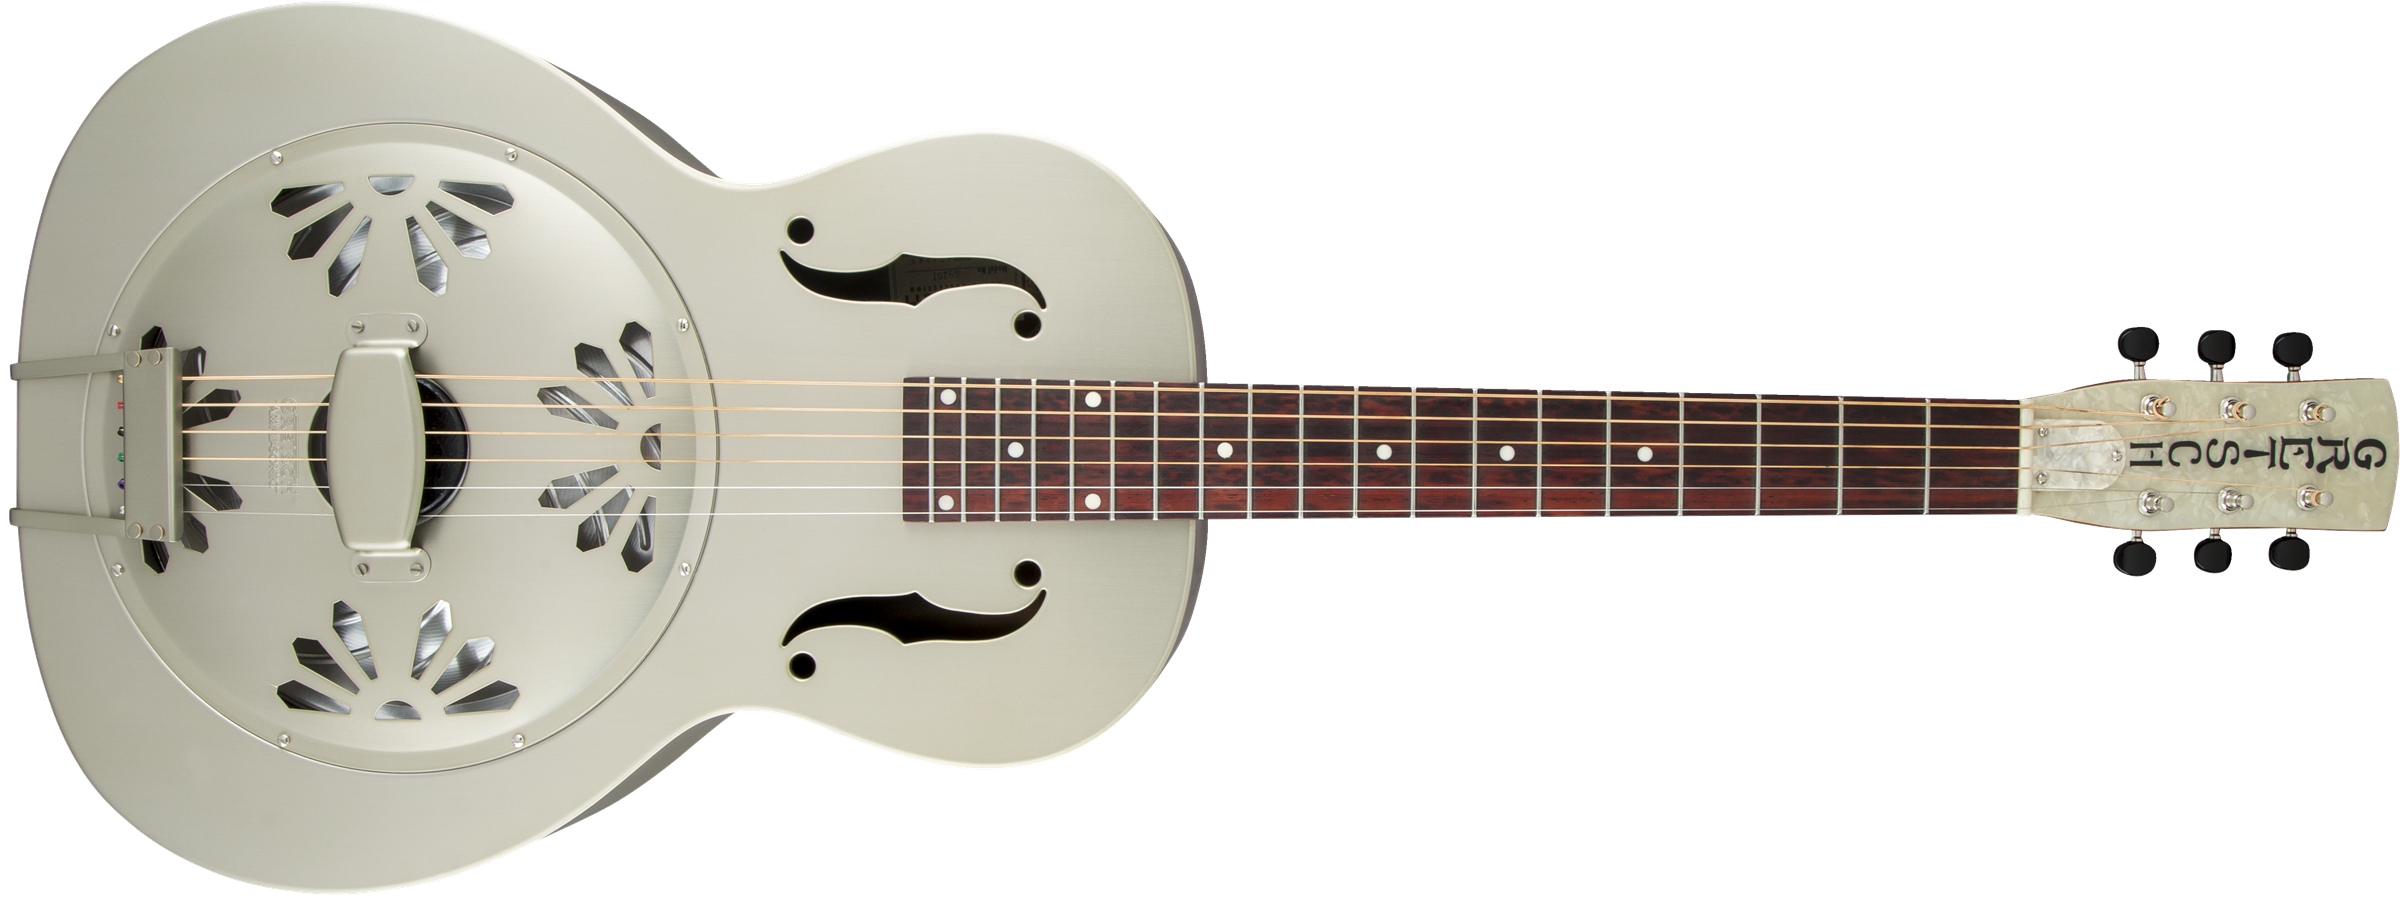 GRETSCH G9201 Honey Dipper Round-Neck, Brass Body Biscuit Cone Resonator Guitar, Shed Roof Finish